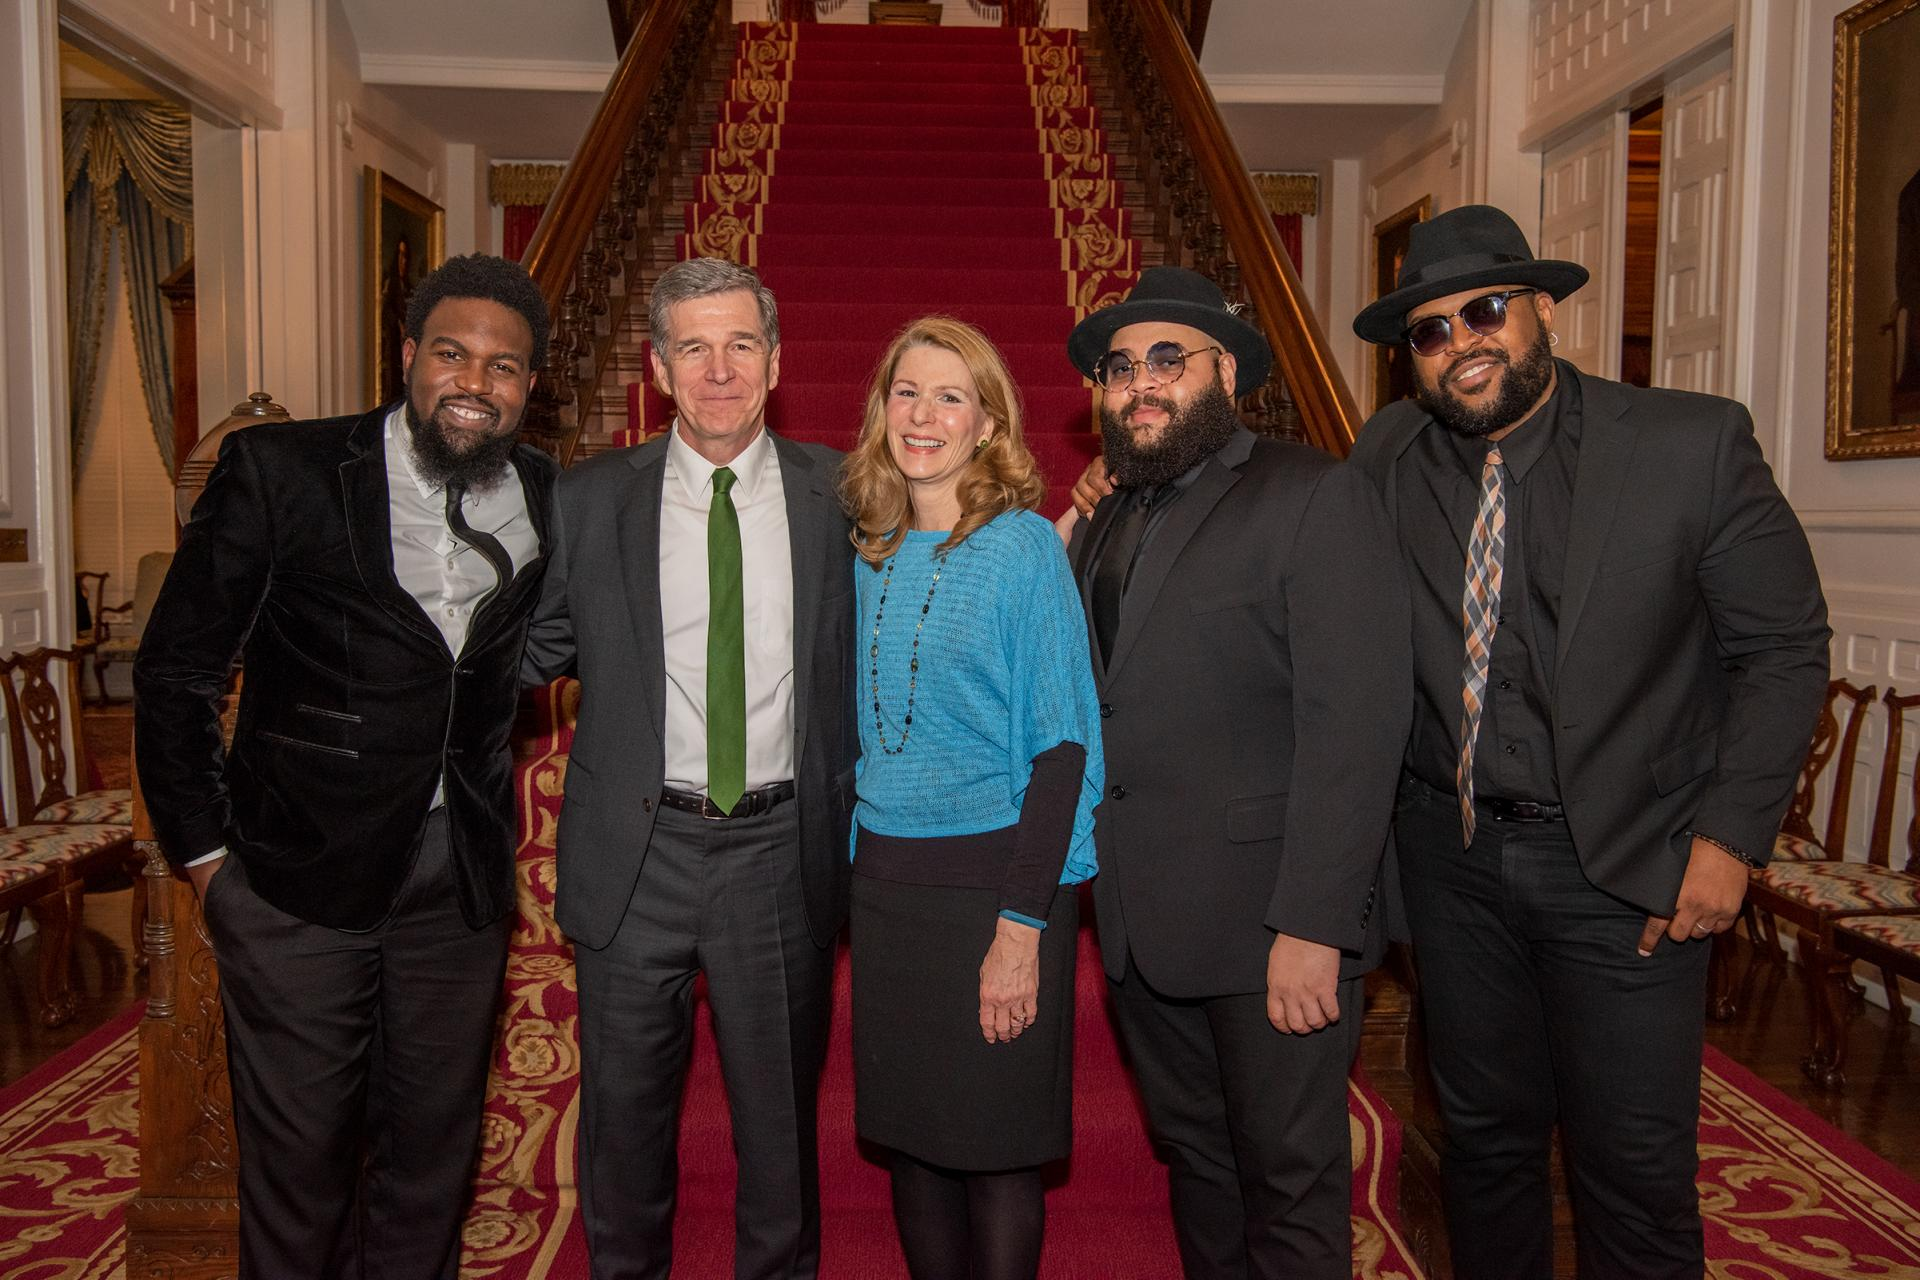 The Hamiltones with Governor Roy Cooper and First Lady Kristin Cooper